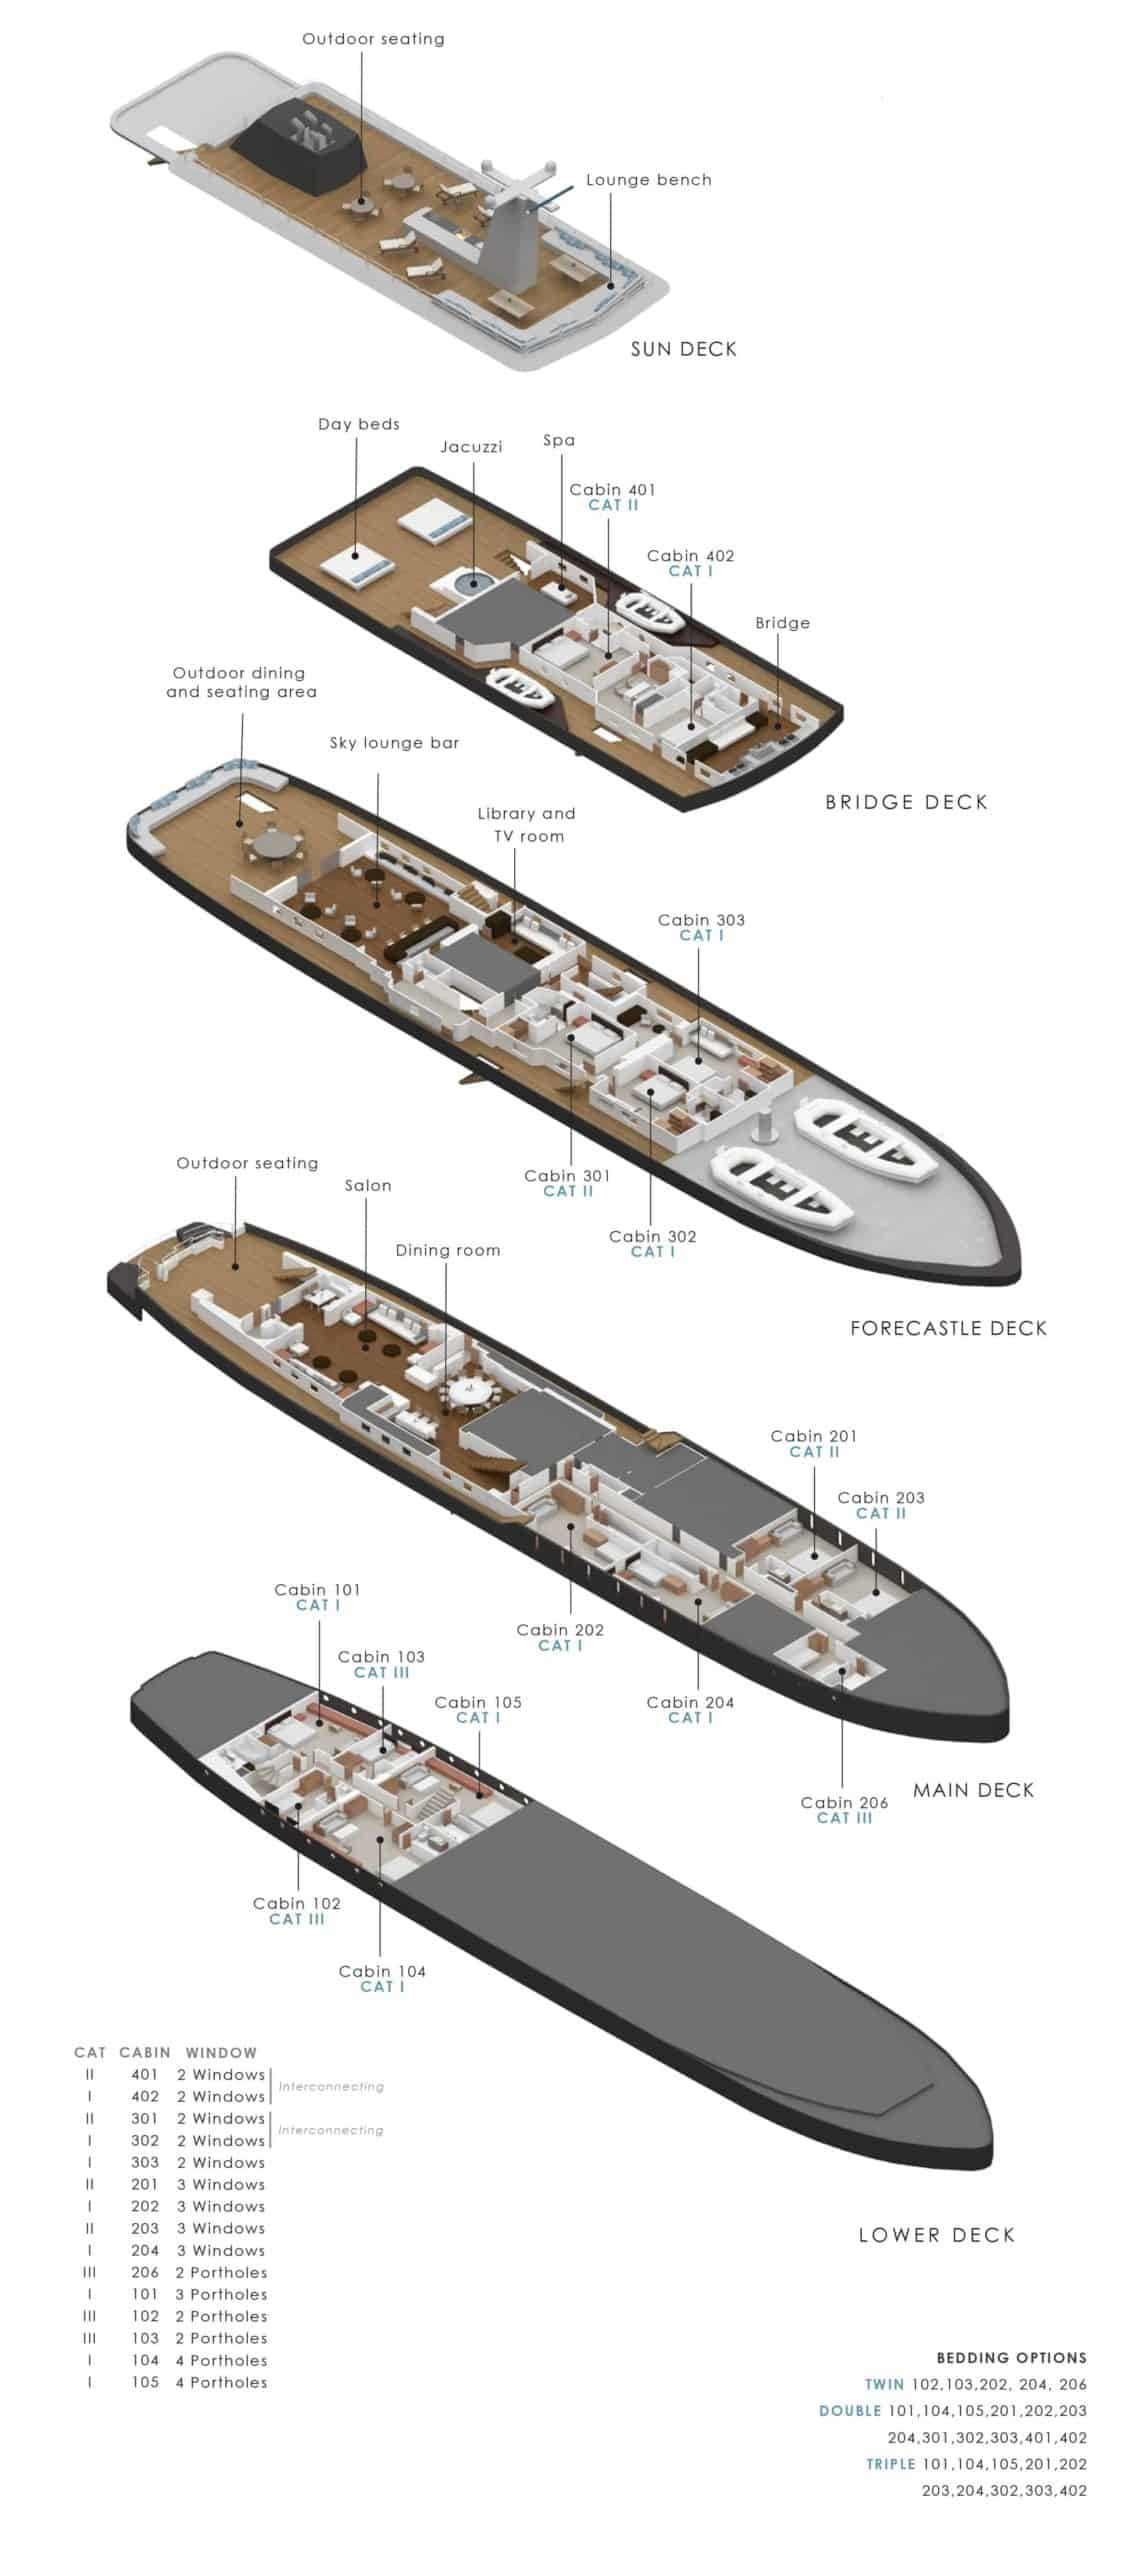 Aqua Blu deck plan showing lower, main, forecastle, bridge, and sun decks.